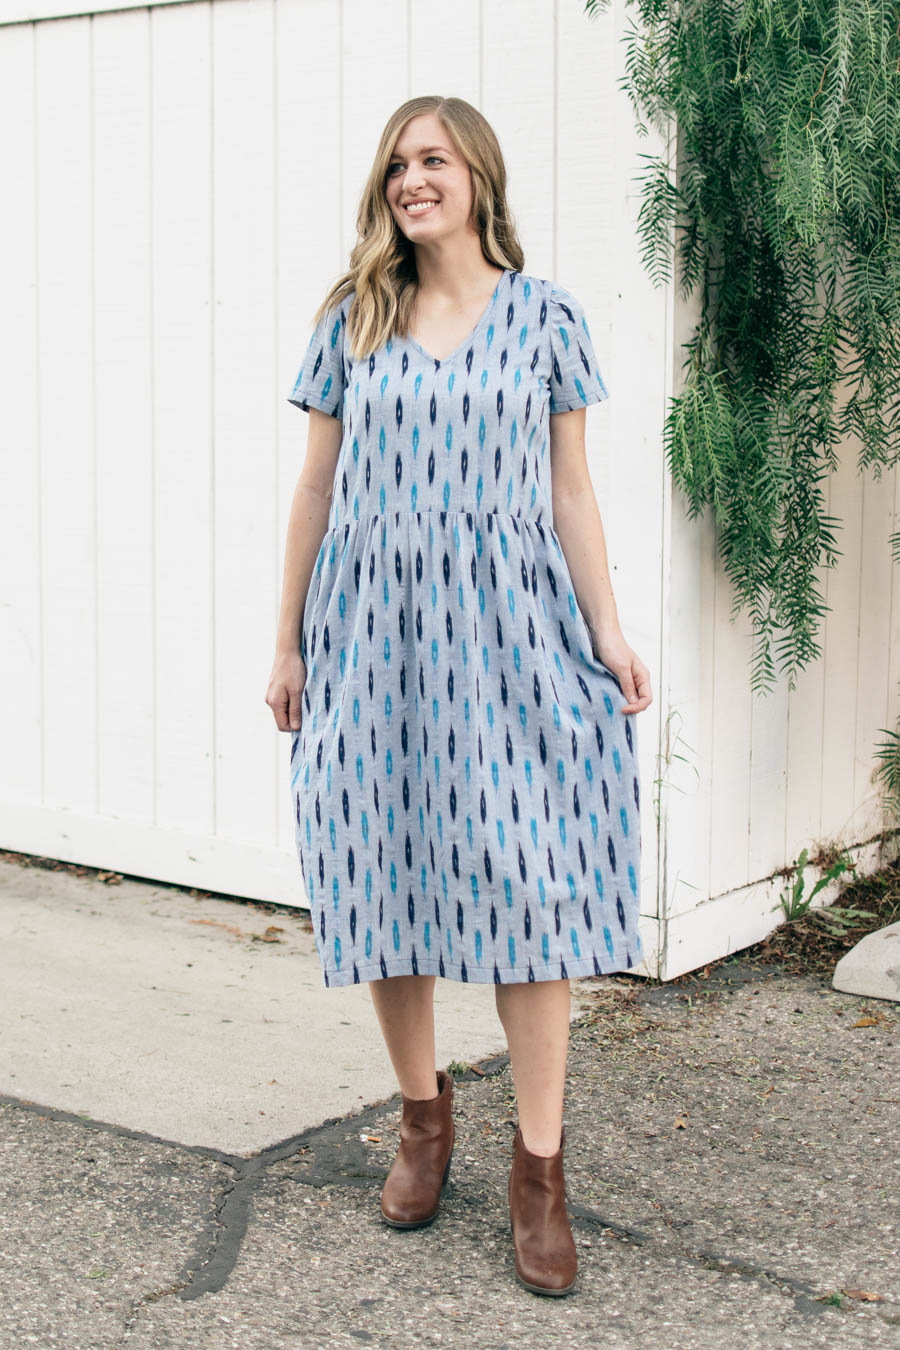 Ace&Jig Inspired Dress